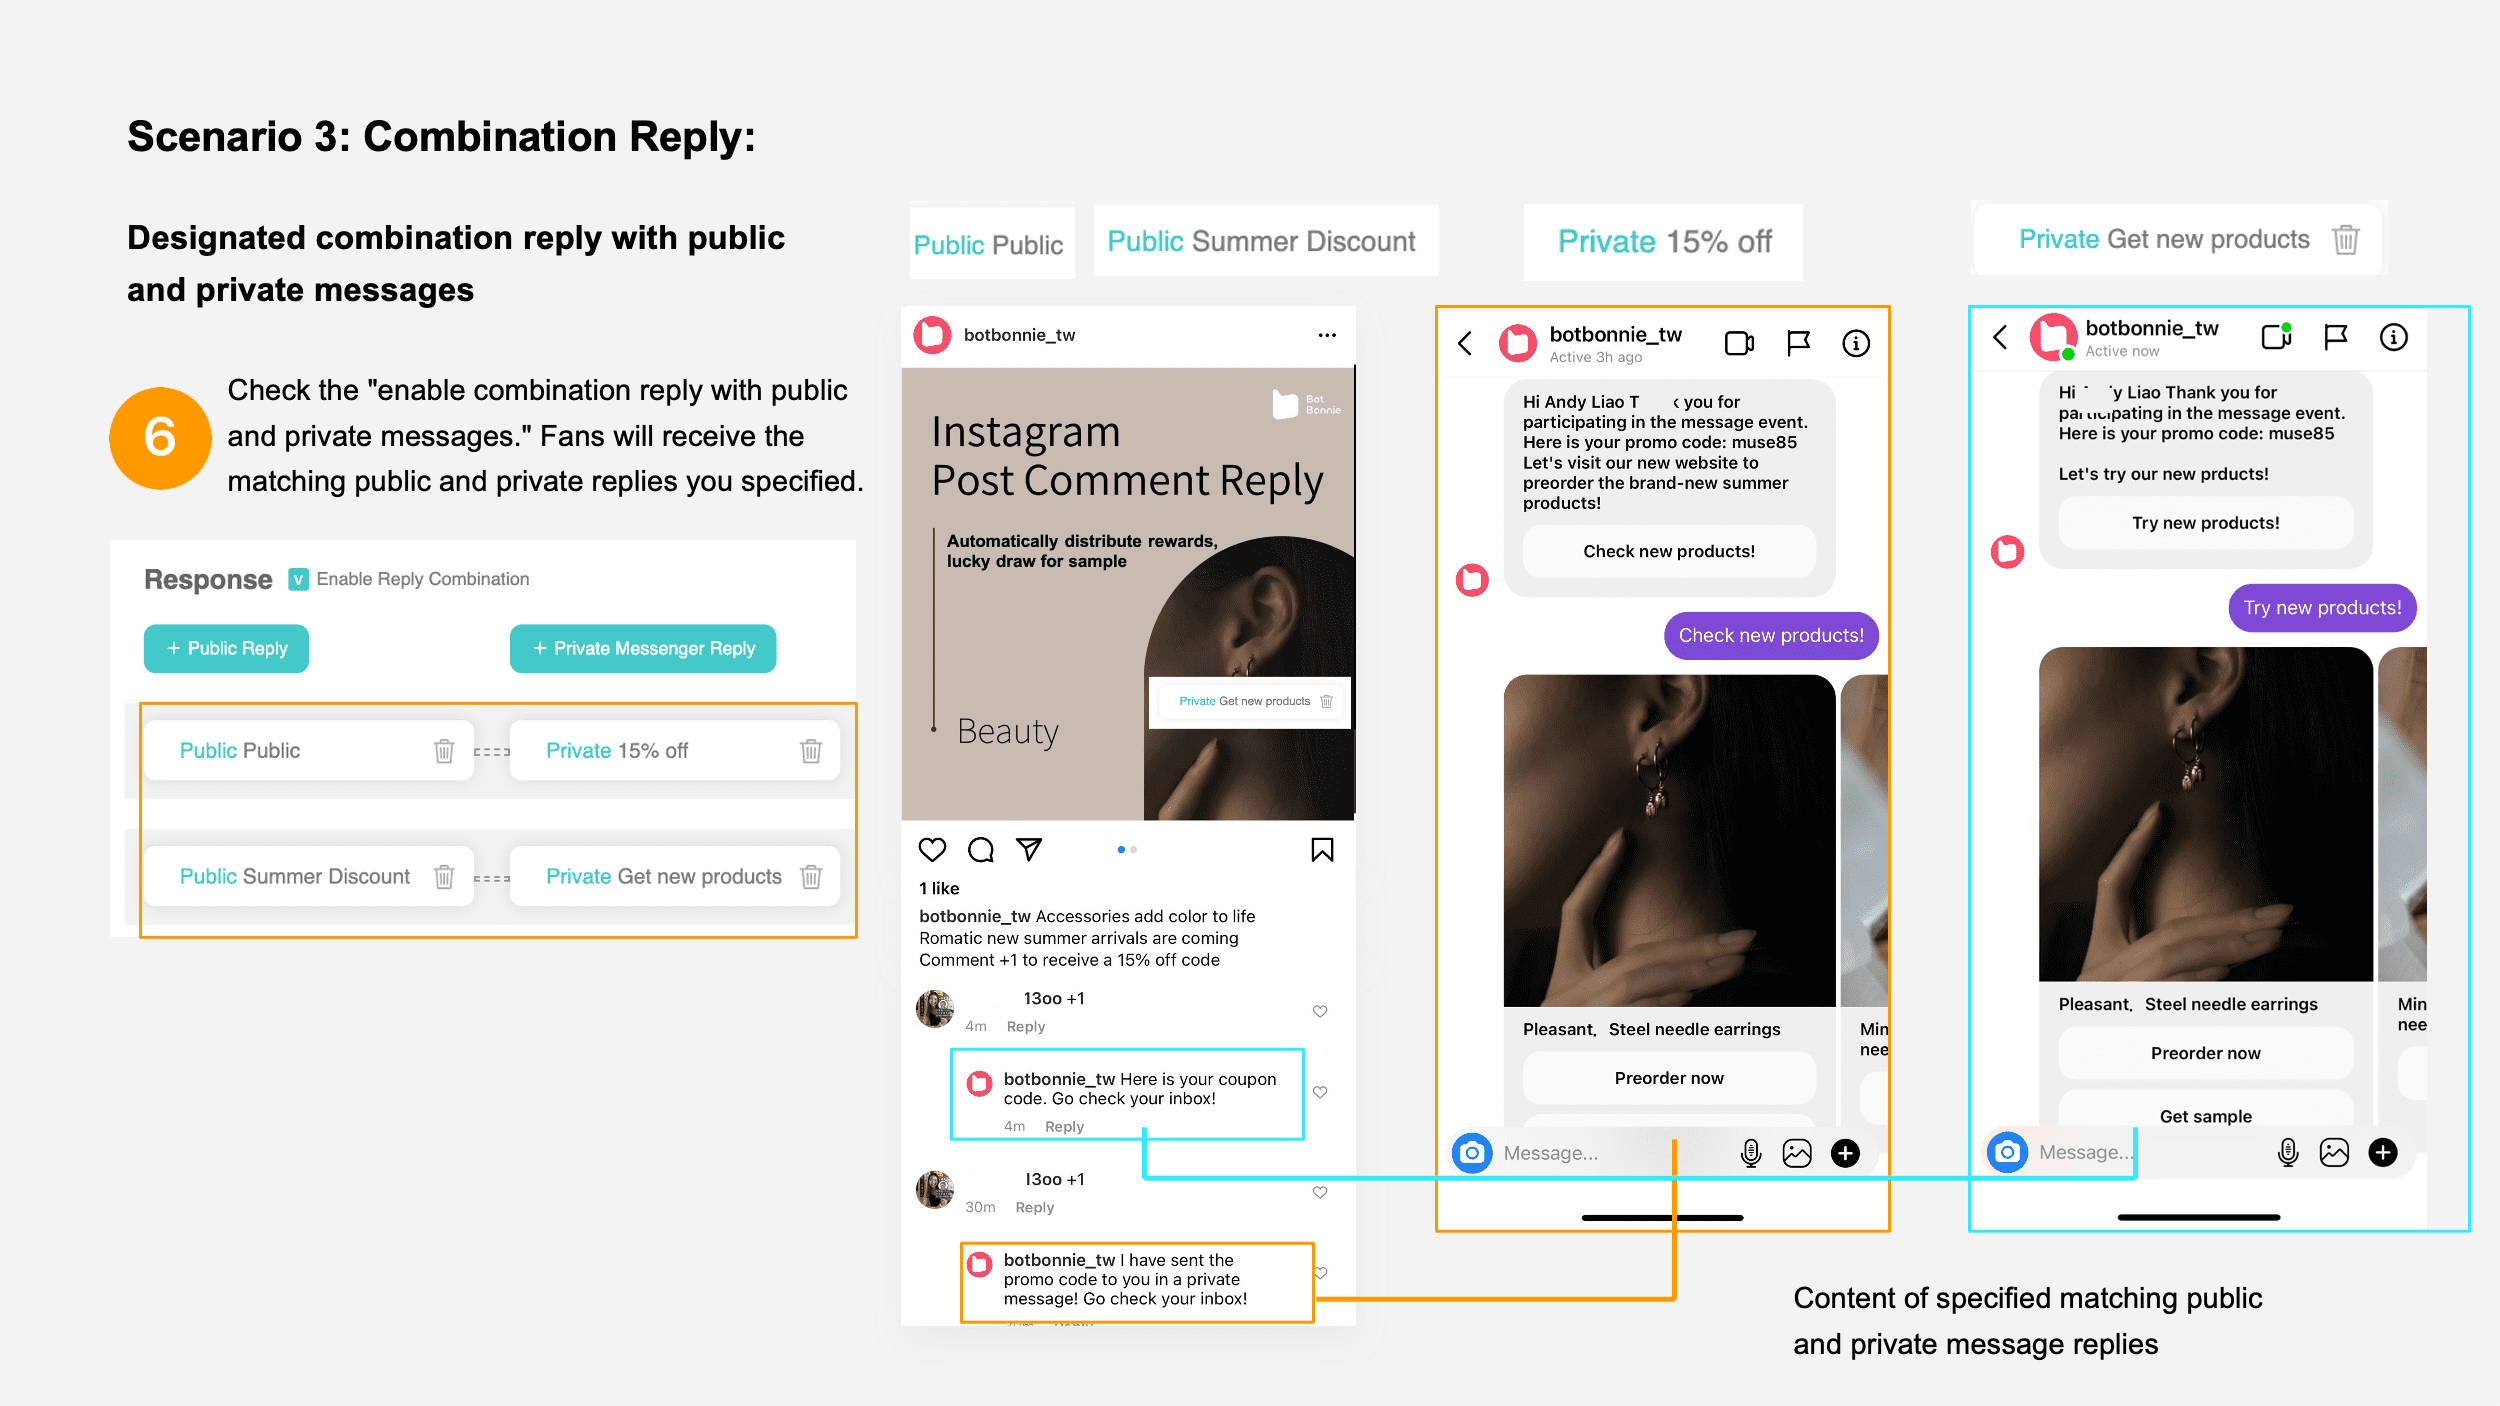 Combination Reply: Match multiple public and private messages